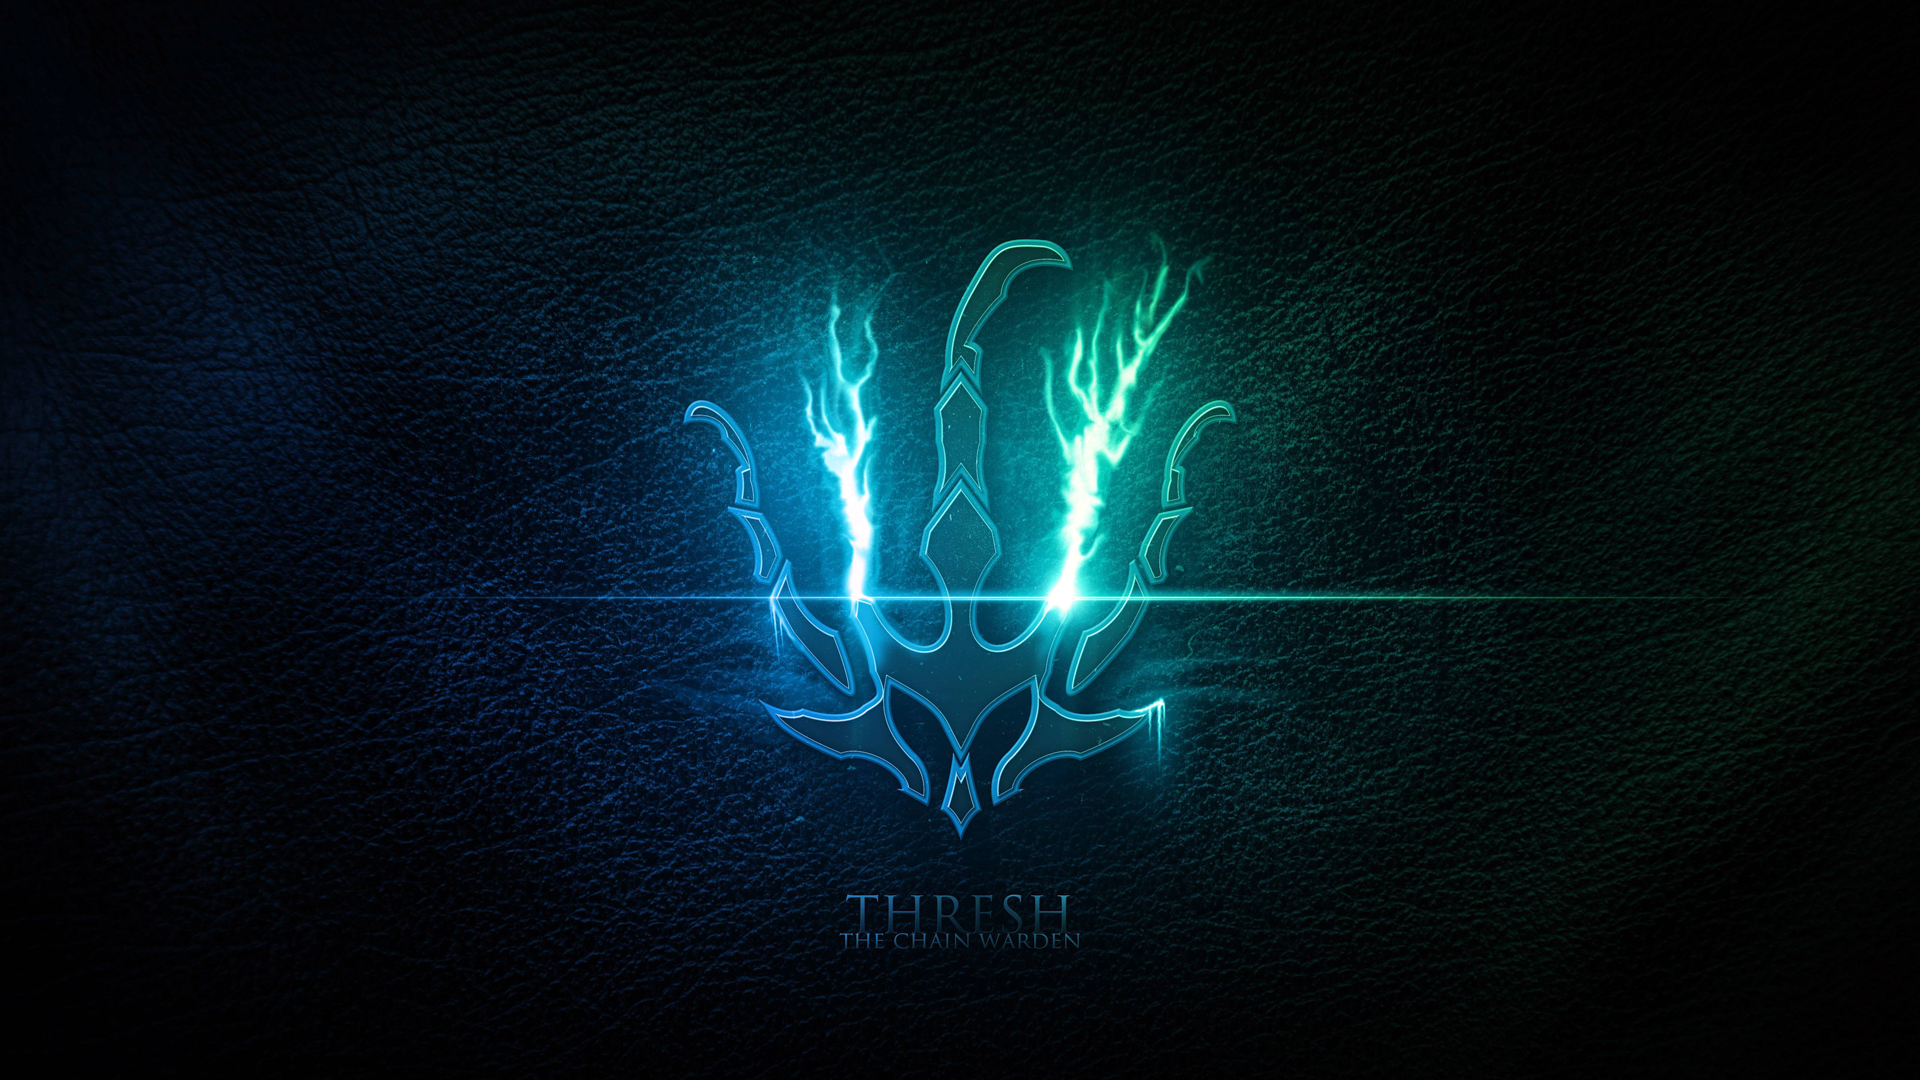 Game wallpaper league of legends yasuo wallpapers iphone with high - Thresh Logo League Of Legends Wallpaper Hd